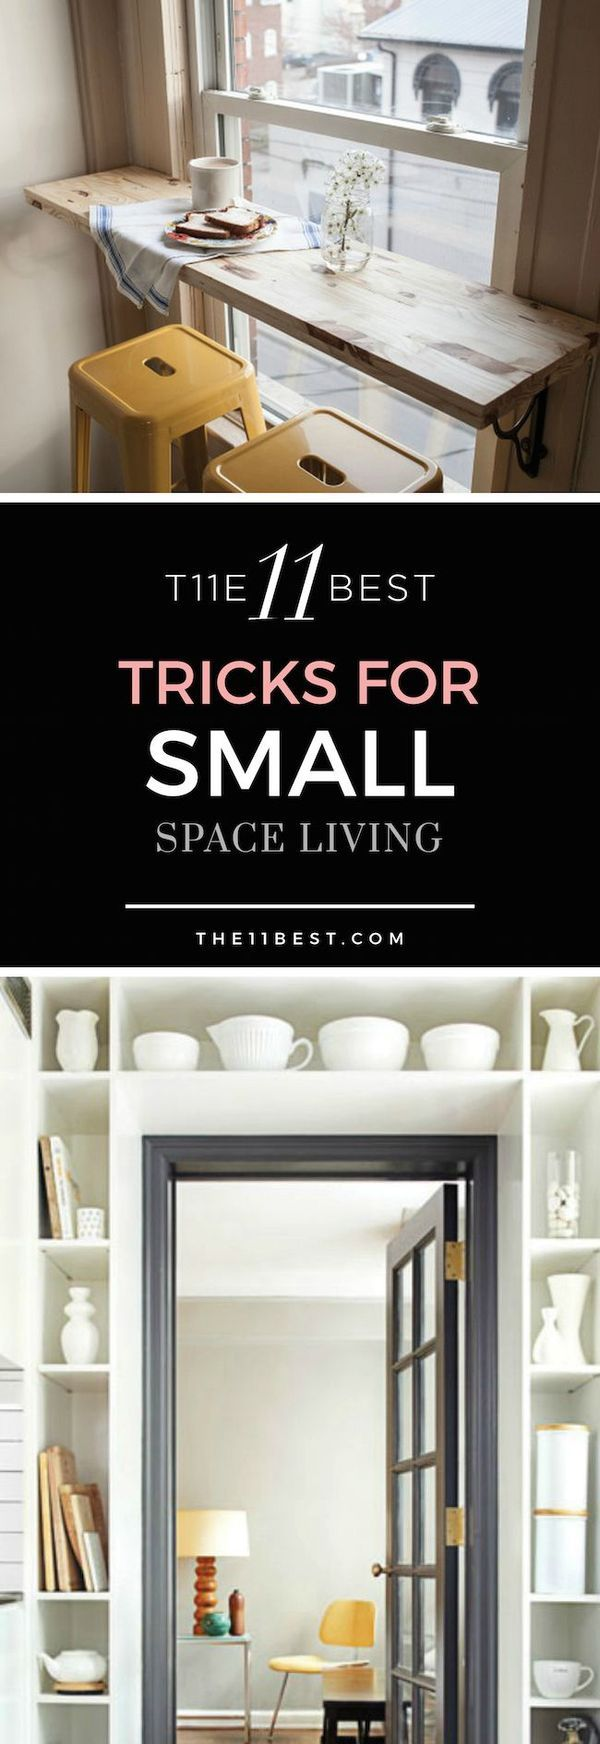 the 11 best tricks for small space living clever little life hacks pinterest kleine. Black Bedroom Furniture Sets. Home Design Ideas